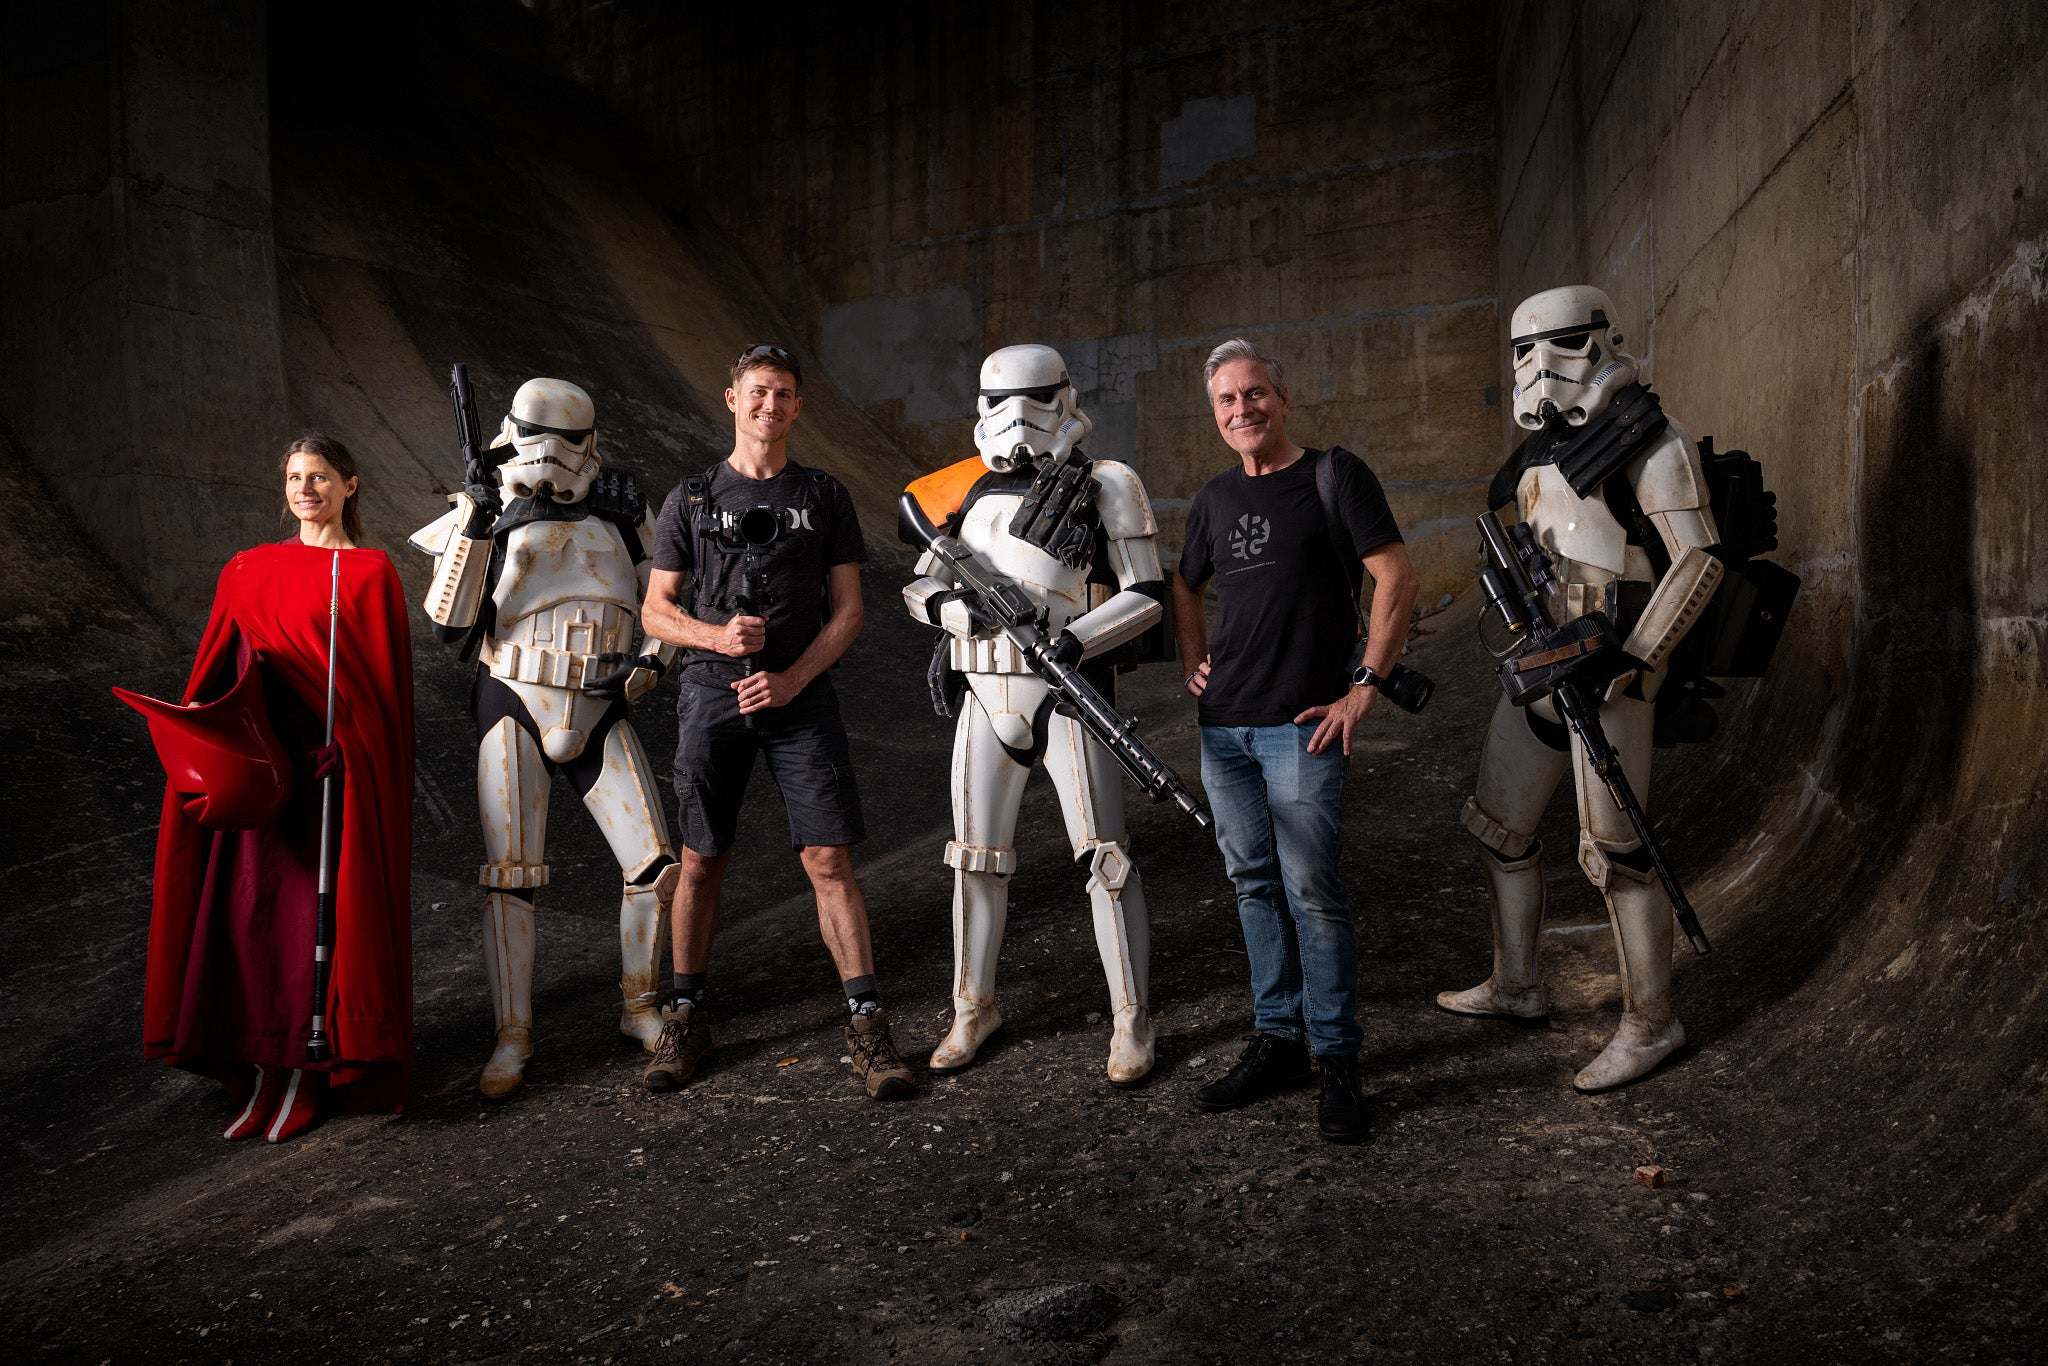 Star Wars characters and crew on a shoot at the canning dam in Western Australia